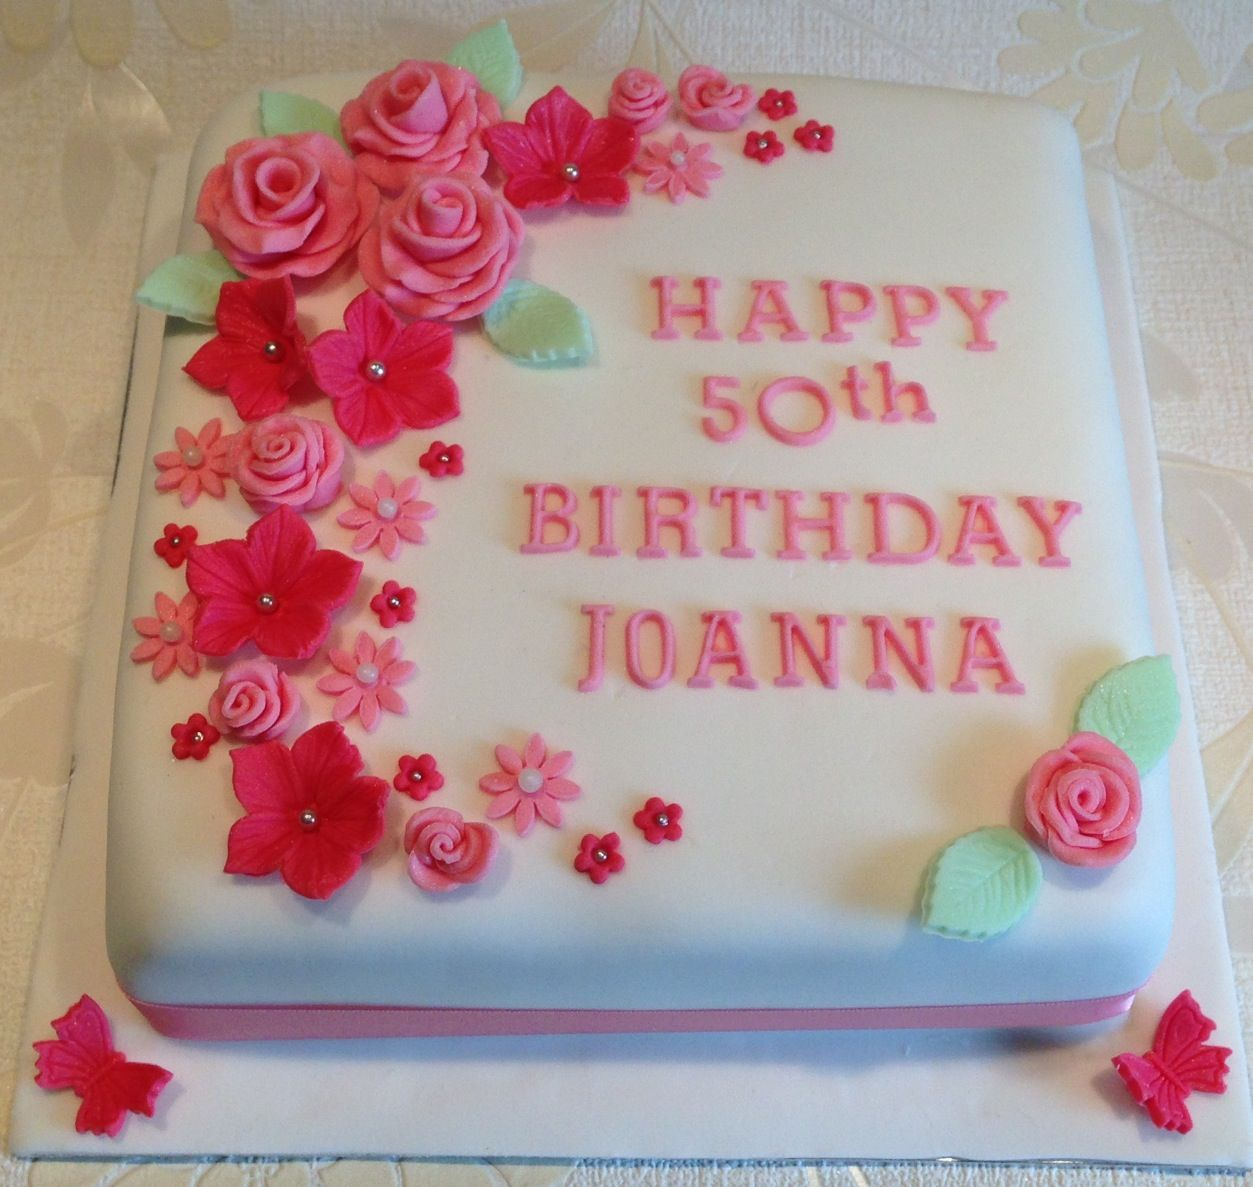 Happy 50th Birthday Square Iced Cake Flowers Butterfly Pink